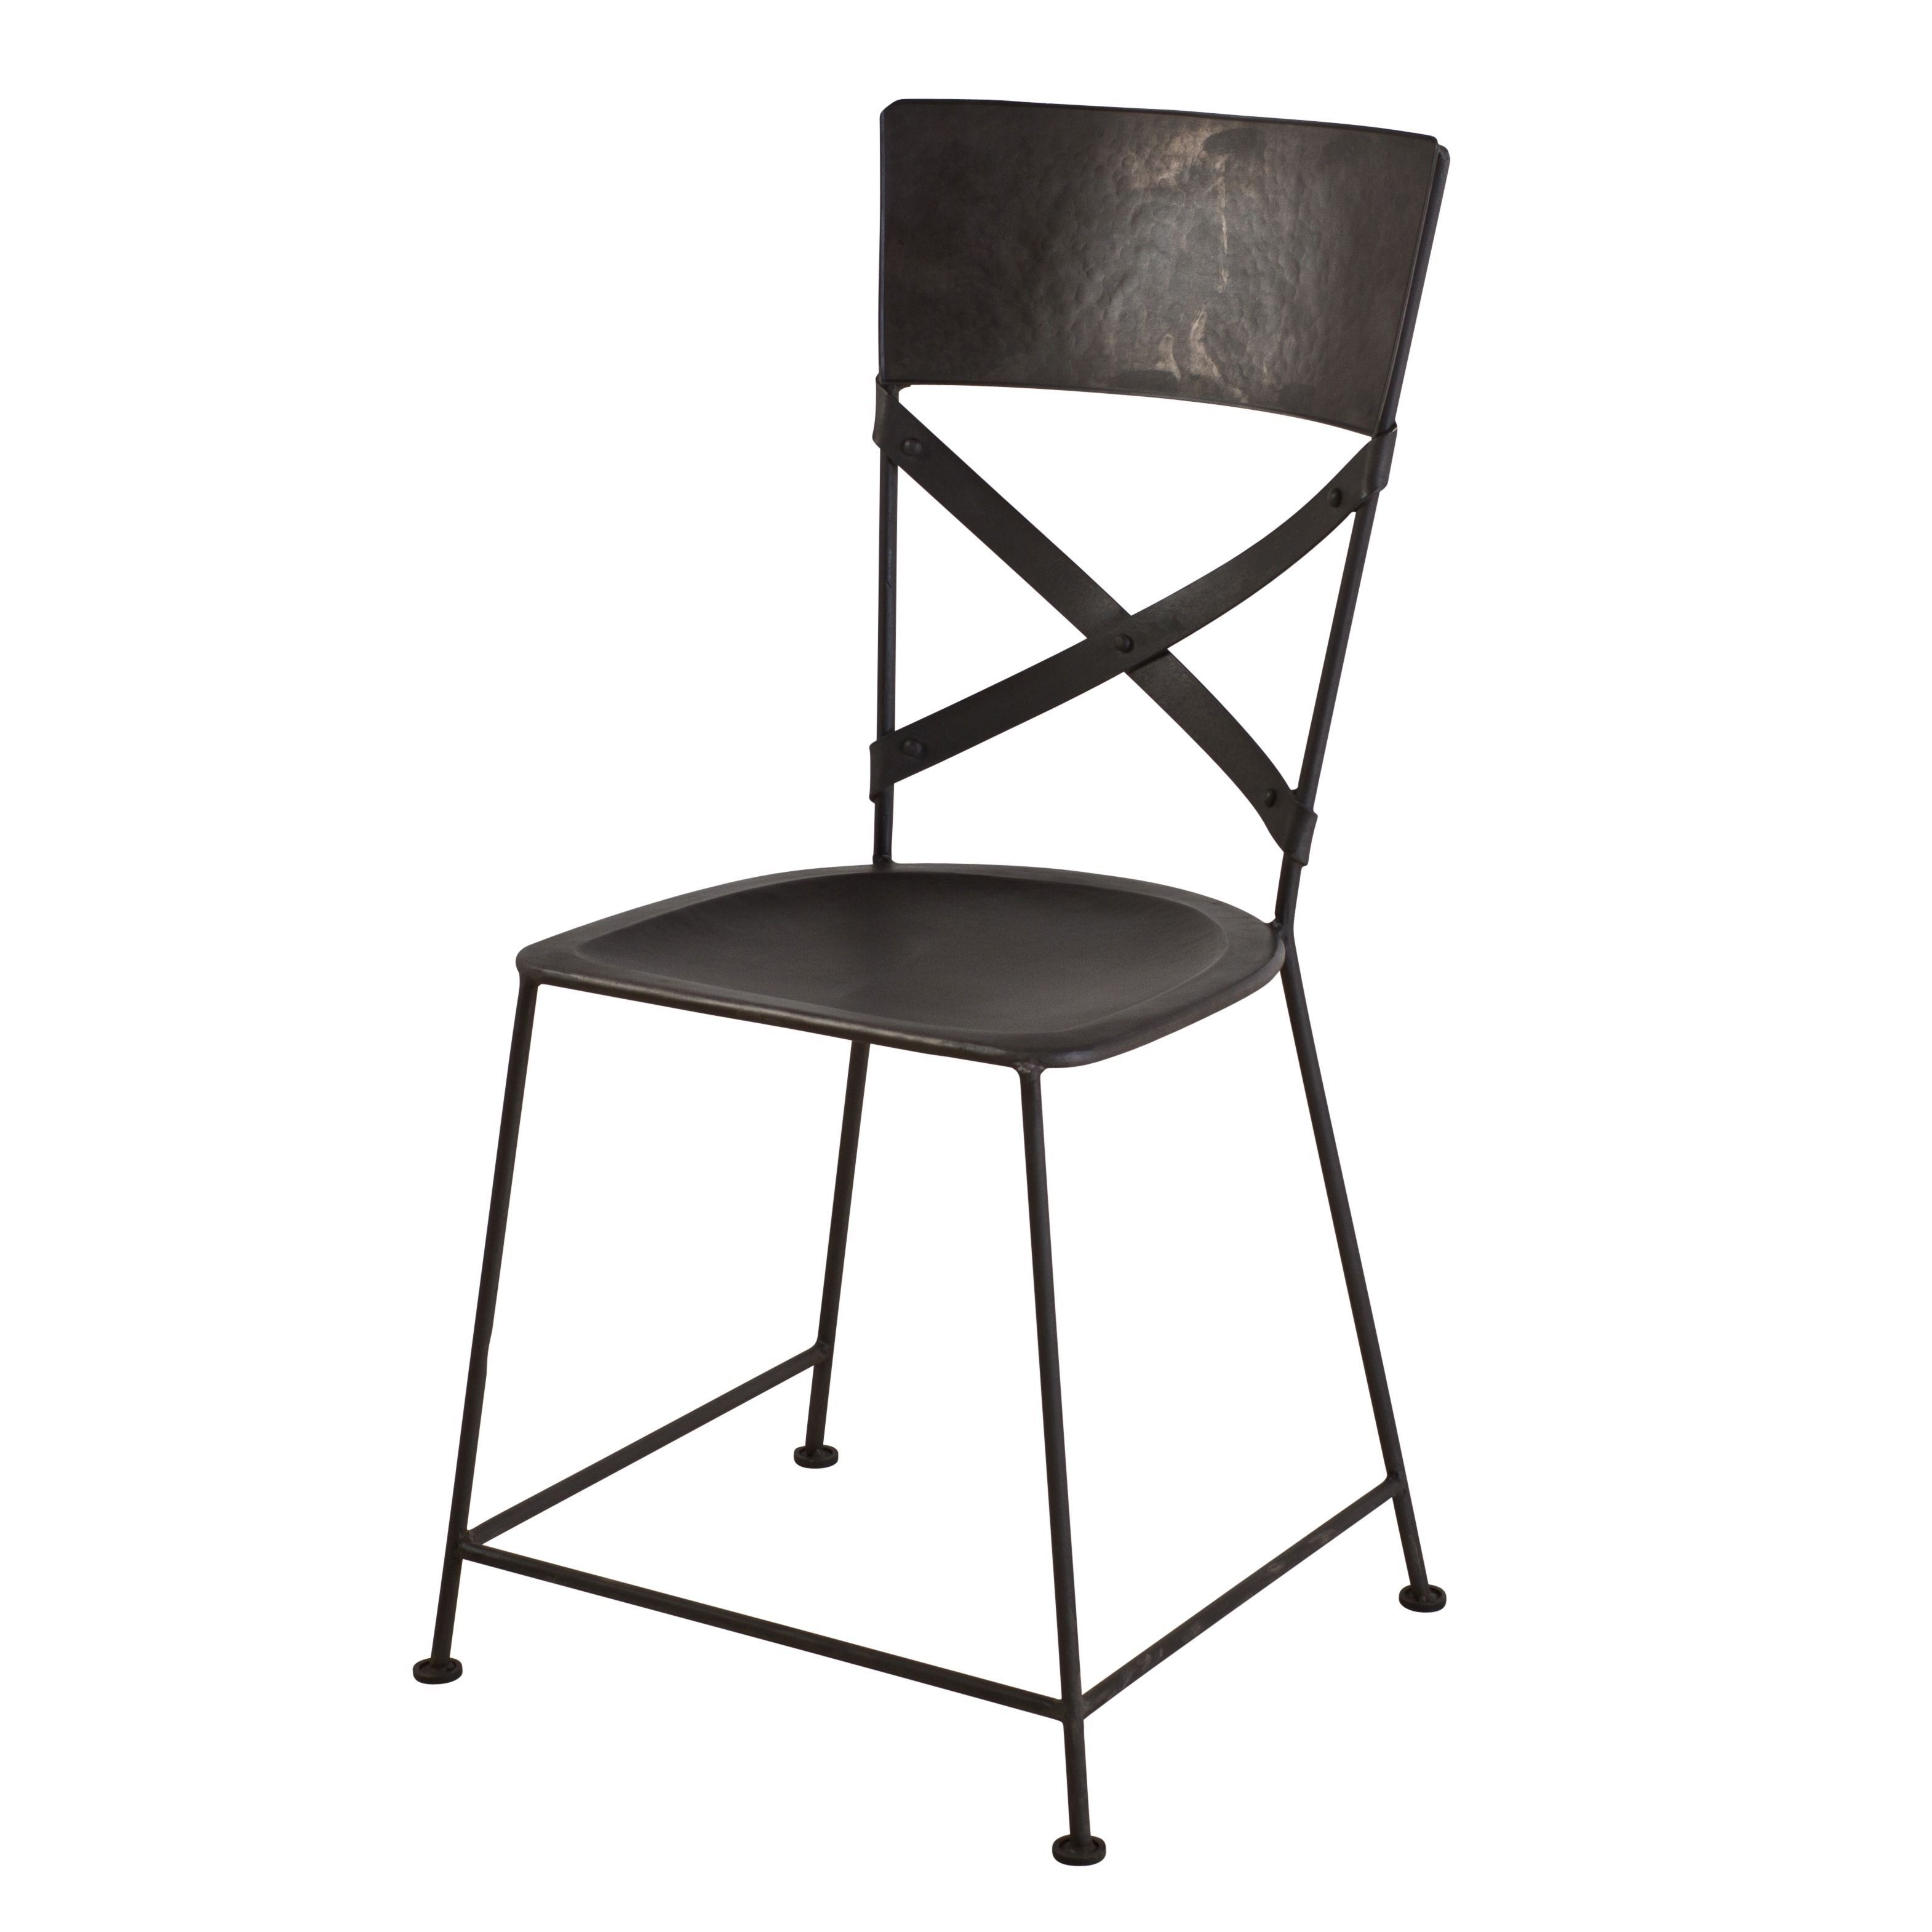 Zinc Finish Furniture X Back Zinc Dining Chair Dining Chairs Iron And Online Furniture